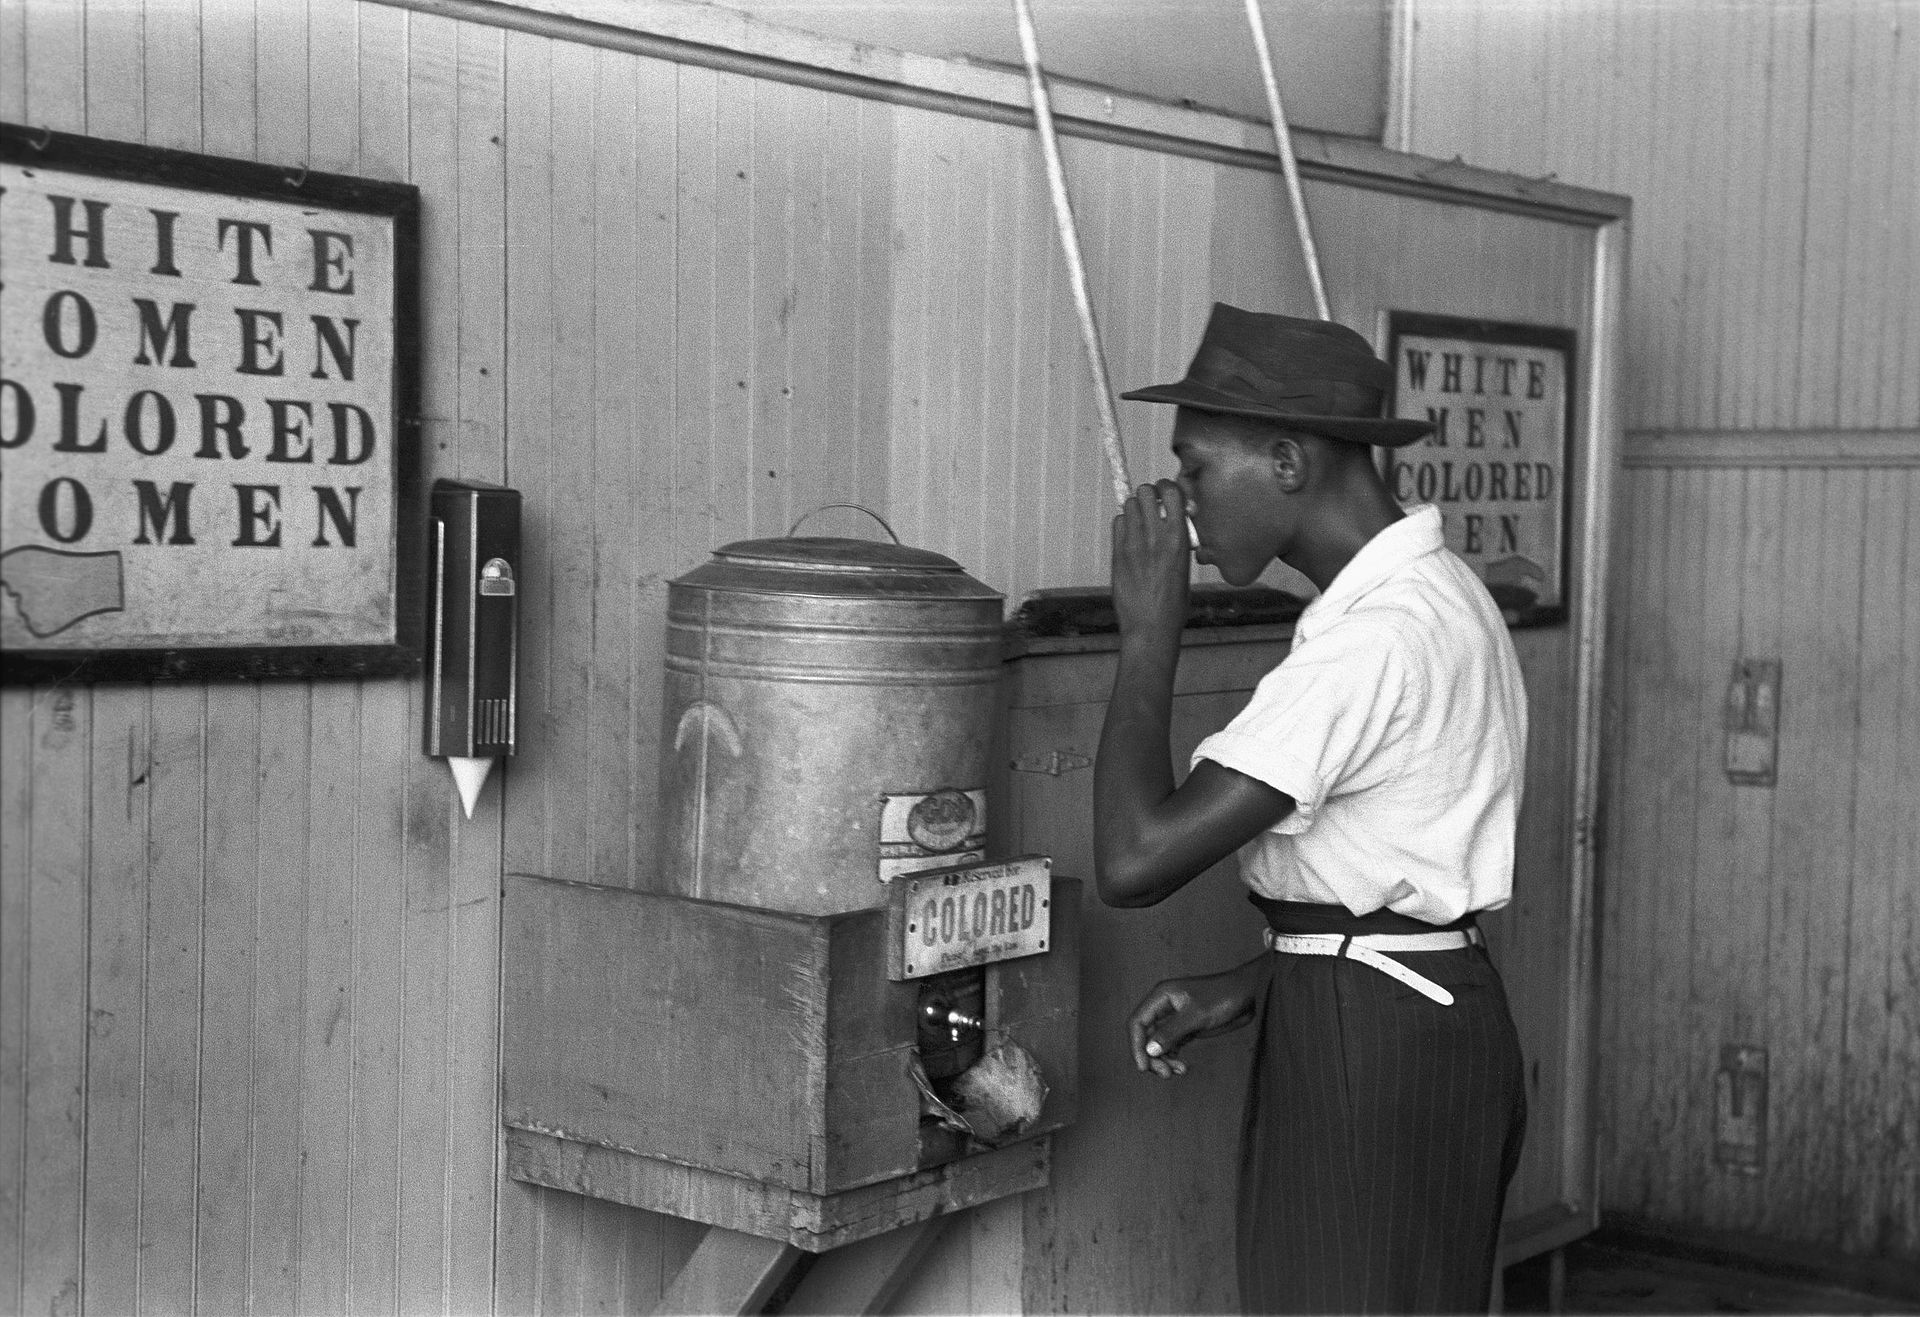 1920px-'Colored'_drinking_fountain_from_mid-20th_century_with_african-american_drinking